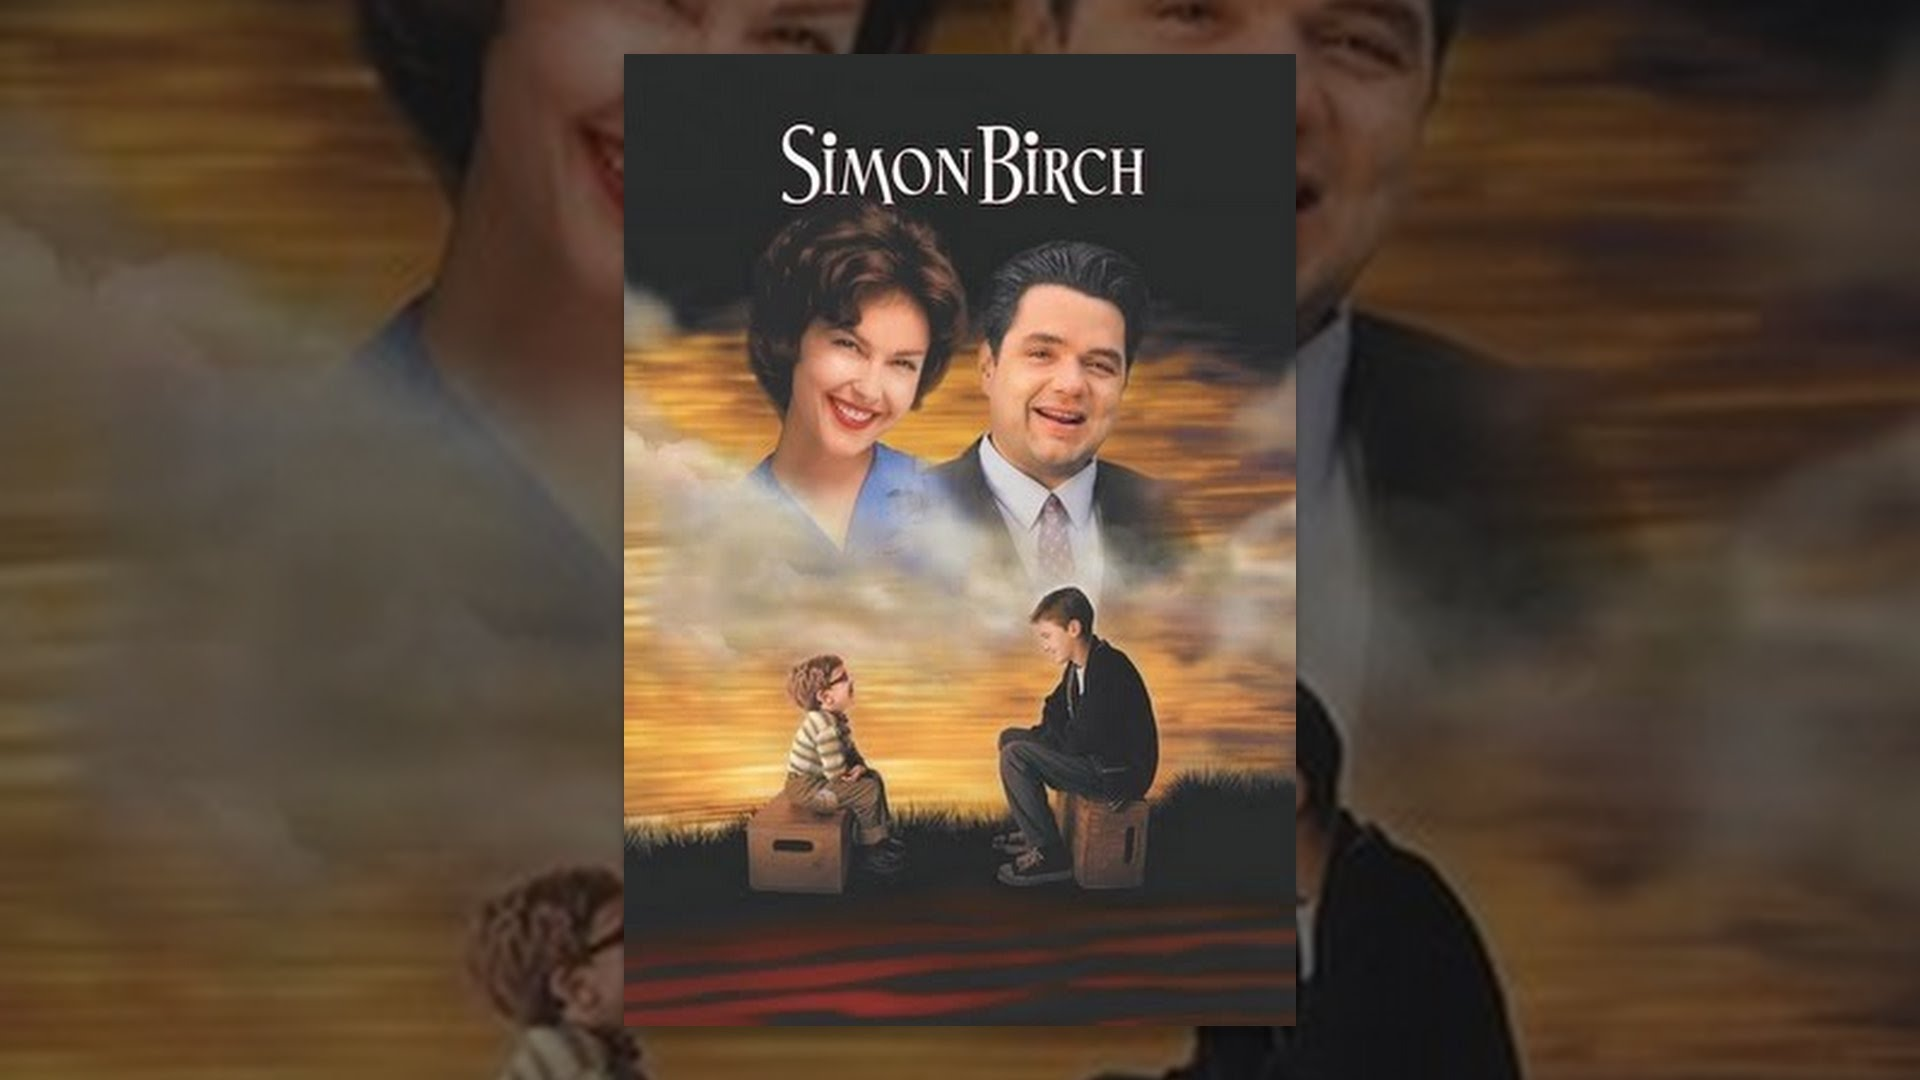 essay about simon birch